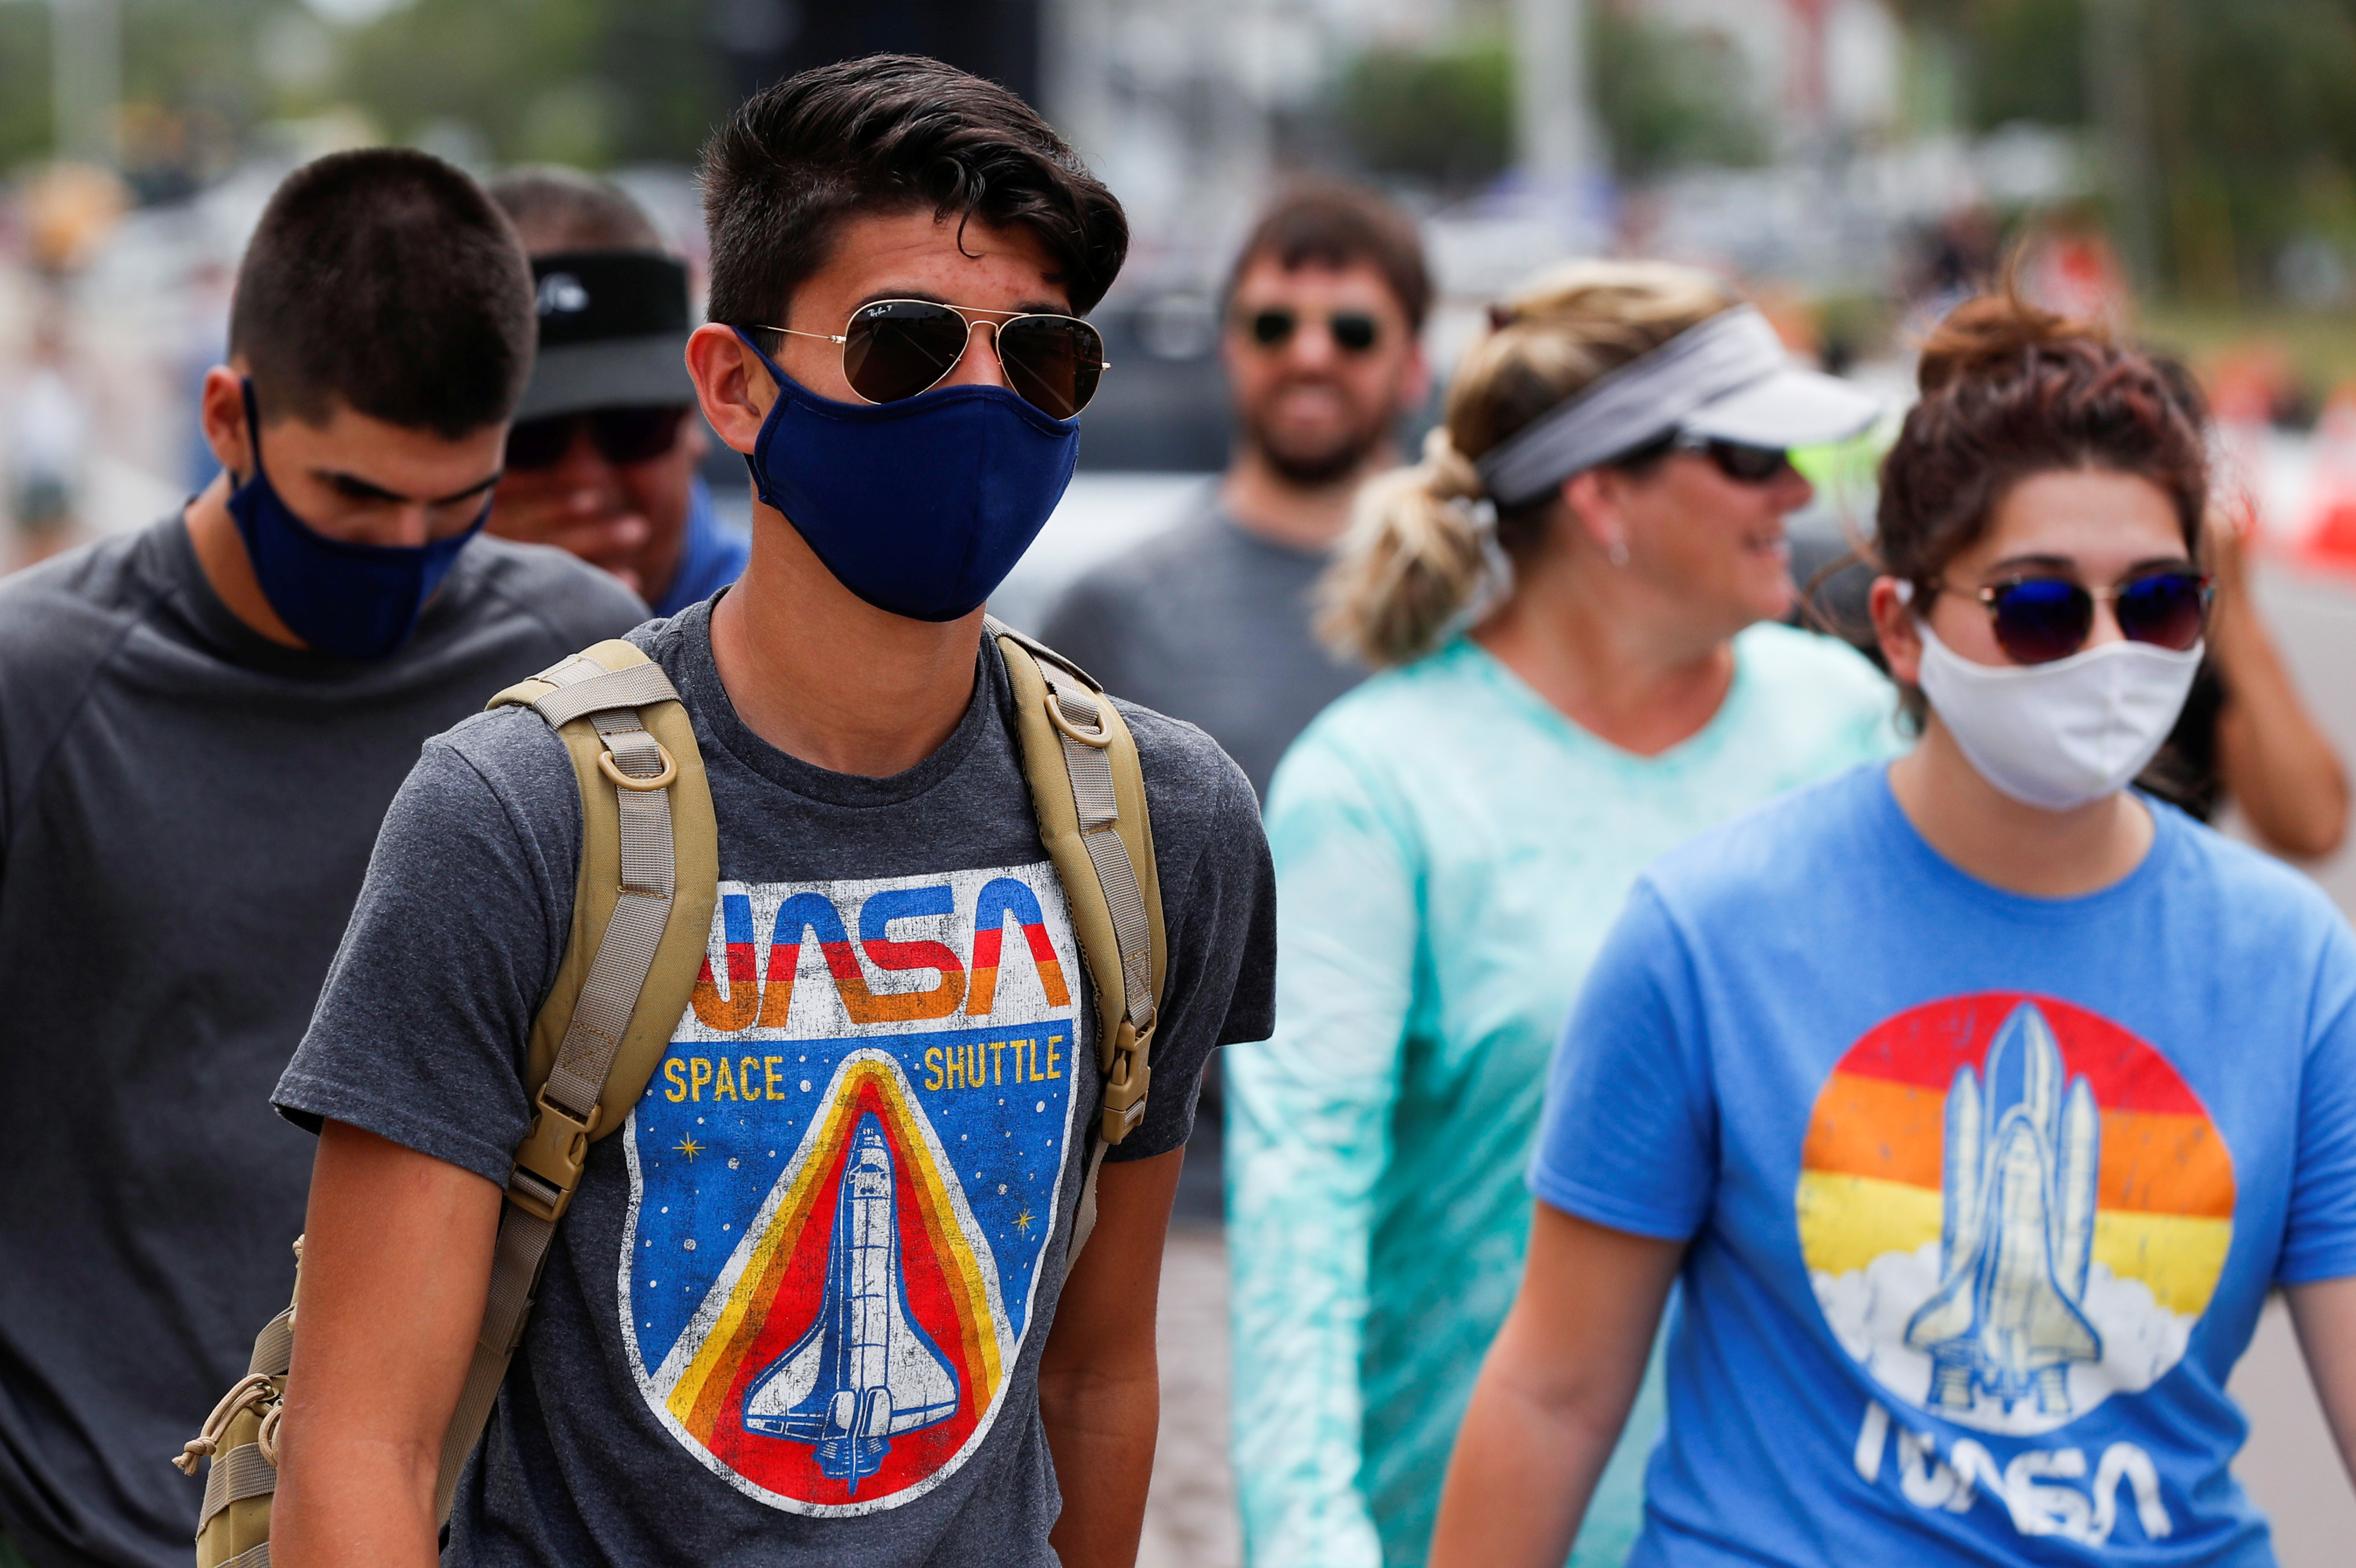 People wearing NASA'S T-shirts attend to watch the launching of a SpaceX Falcon 9 rocket and Crew Dragon spacecraft carrying NASA's astronauts Douglas Hurley and Robert Behnken during NASA's SpaceX Demo-2 mission to the International Space Station from NASA's Kennedy Space Center, in Cape Canaveral, Florida, U.S. May 30, 2020. REUTERS/Scott Audette